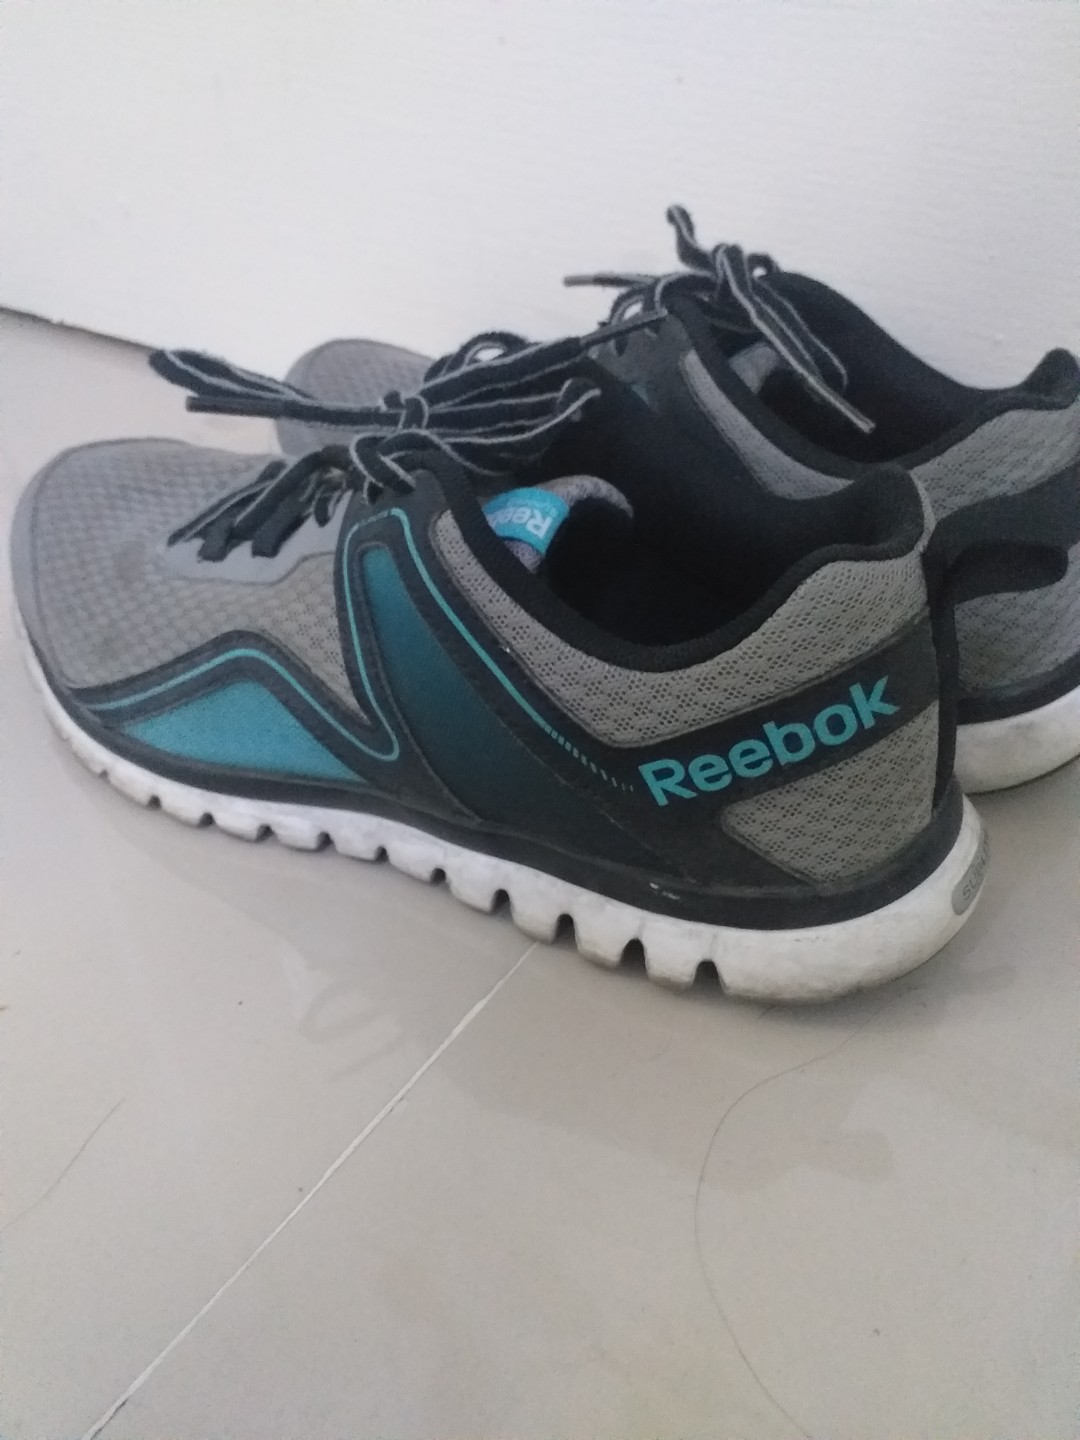 e82b75a44 Authentic Reebok Rubber Shoes, Men's Fashion, Footwear, Sneakers on ...